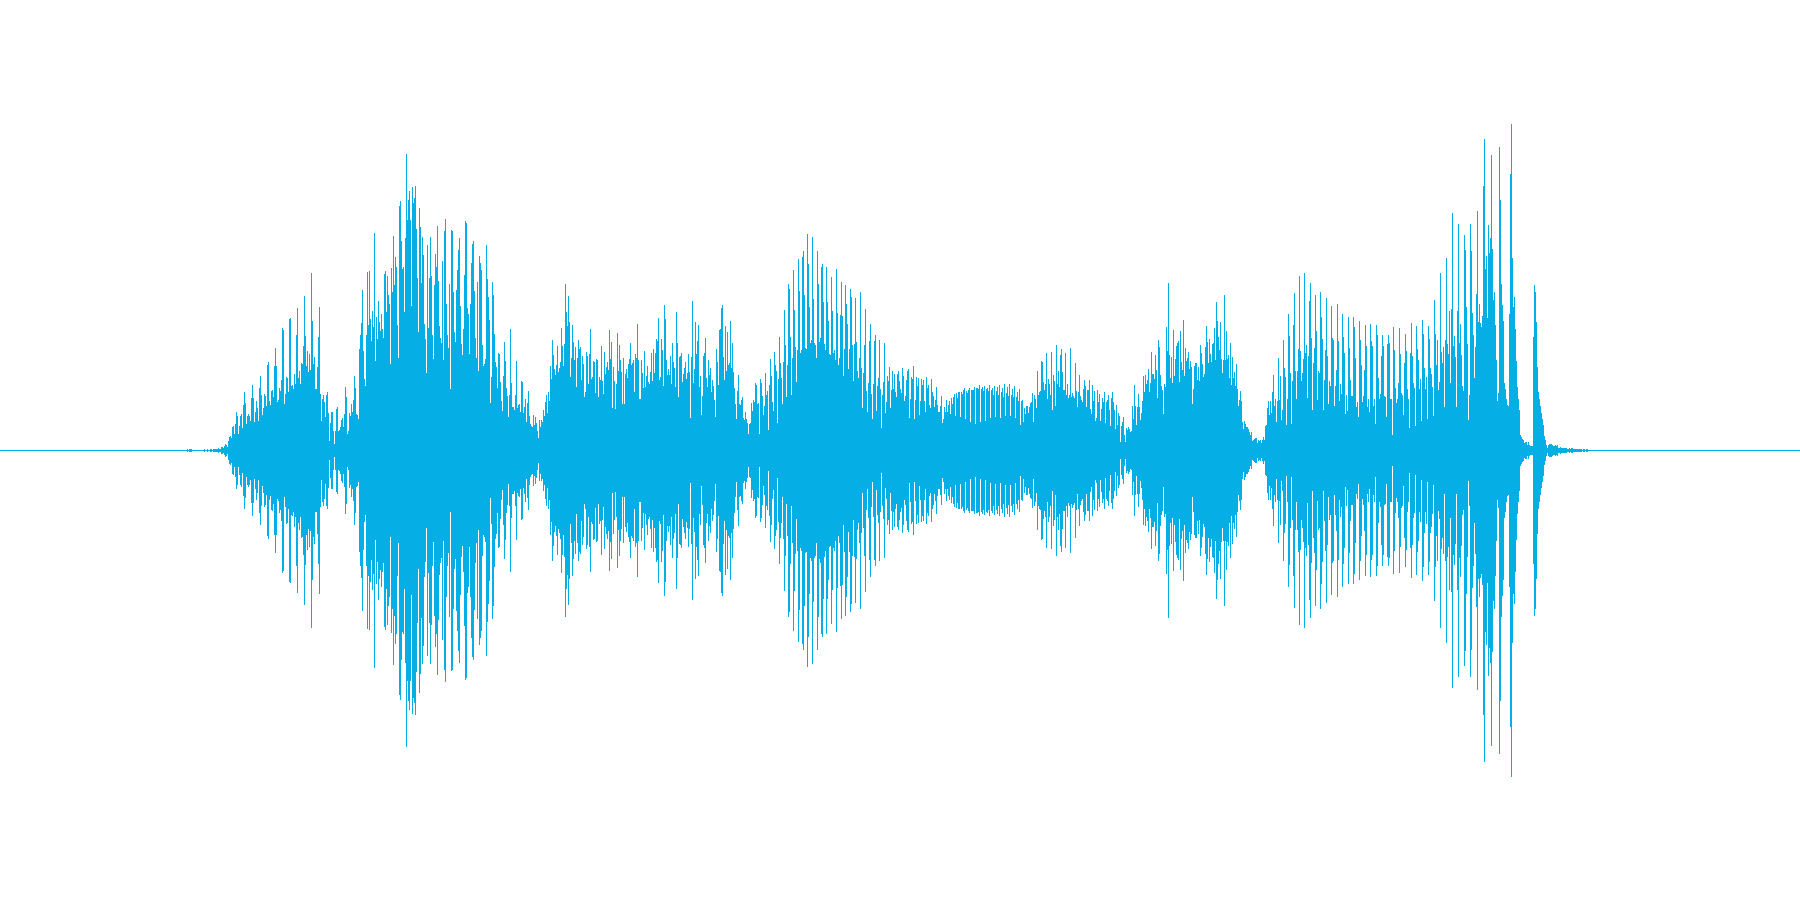 Welcome's reproduced waveform